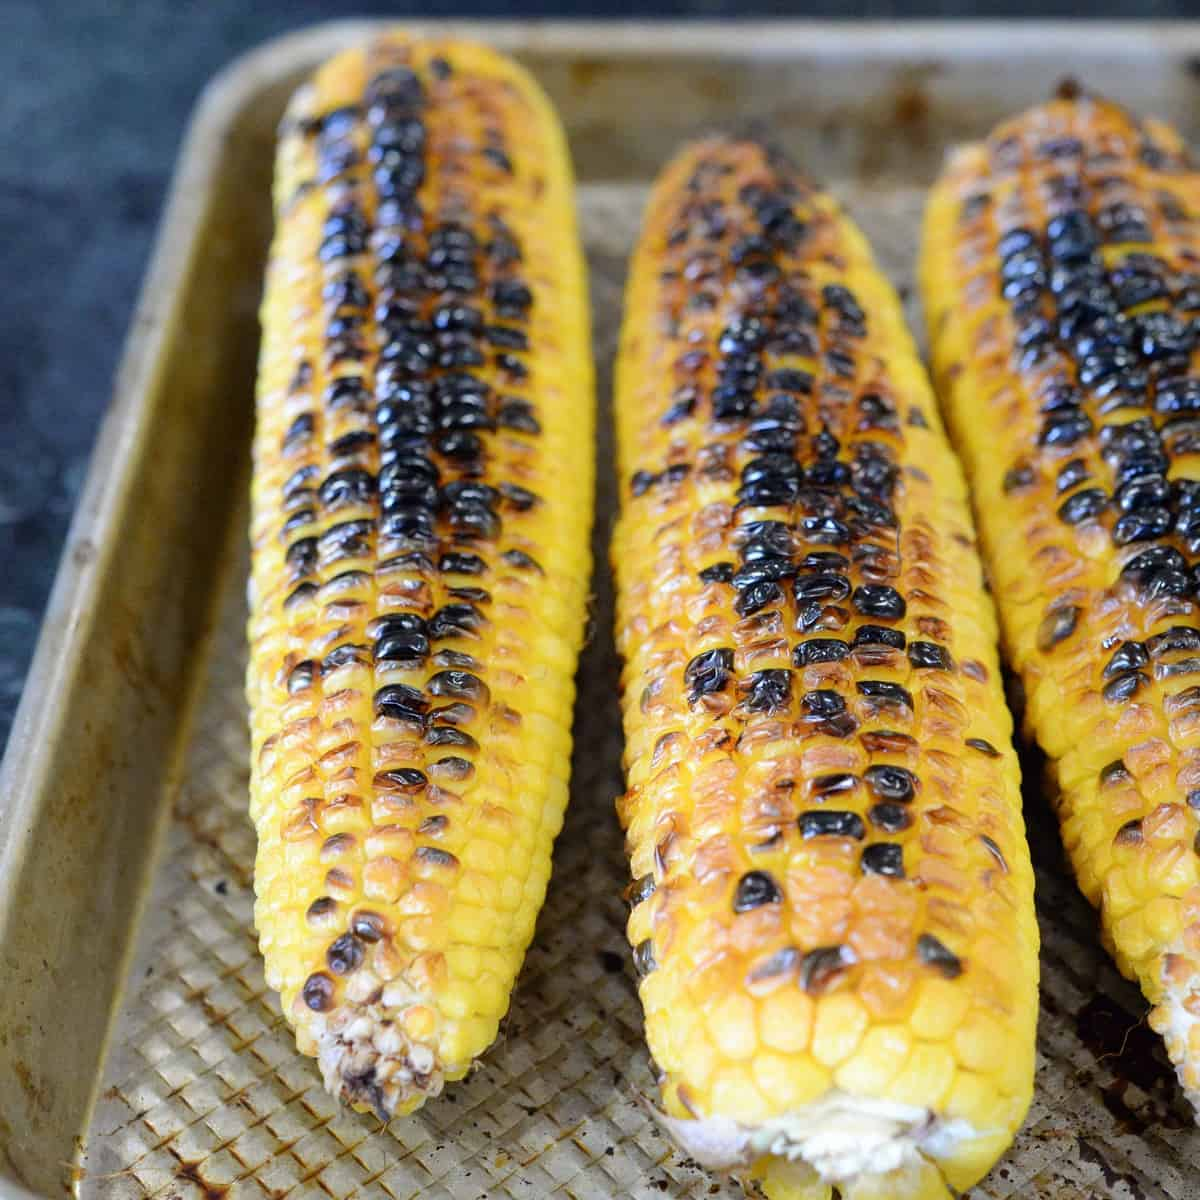 Roasted corn, broiled in the oven.